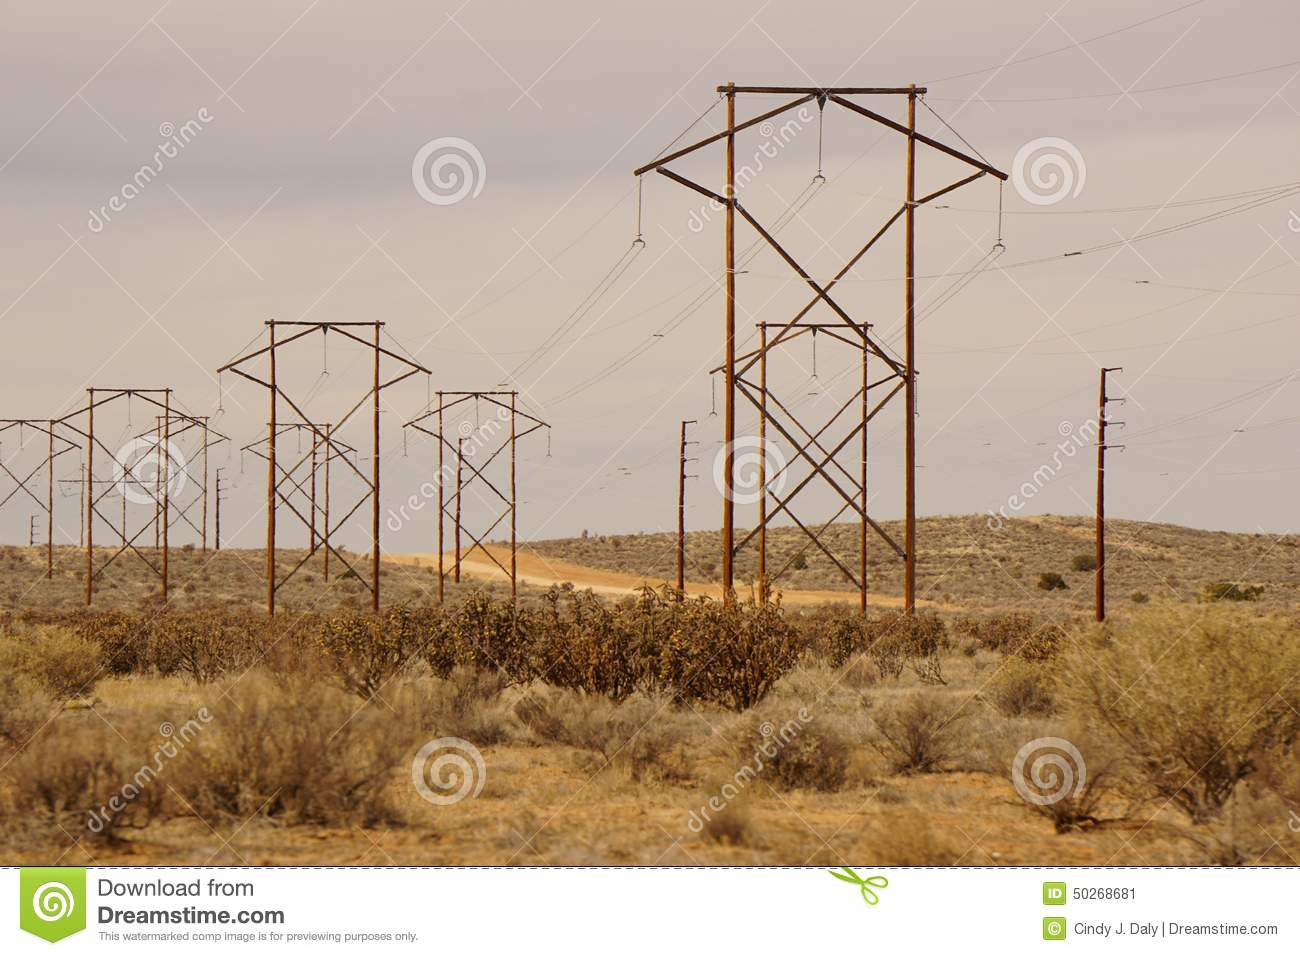 picture of a line of very large power lines.